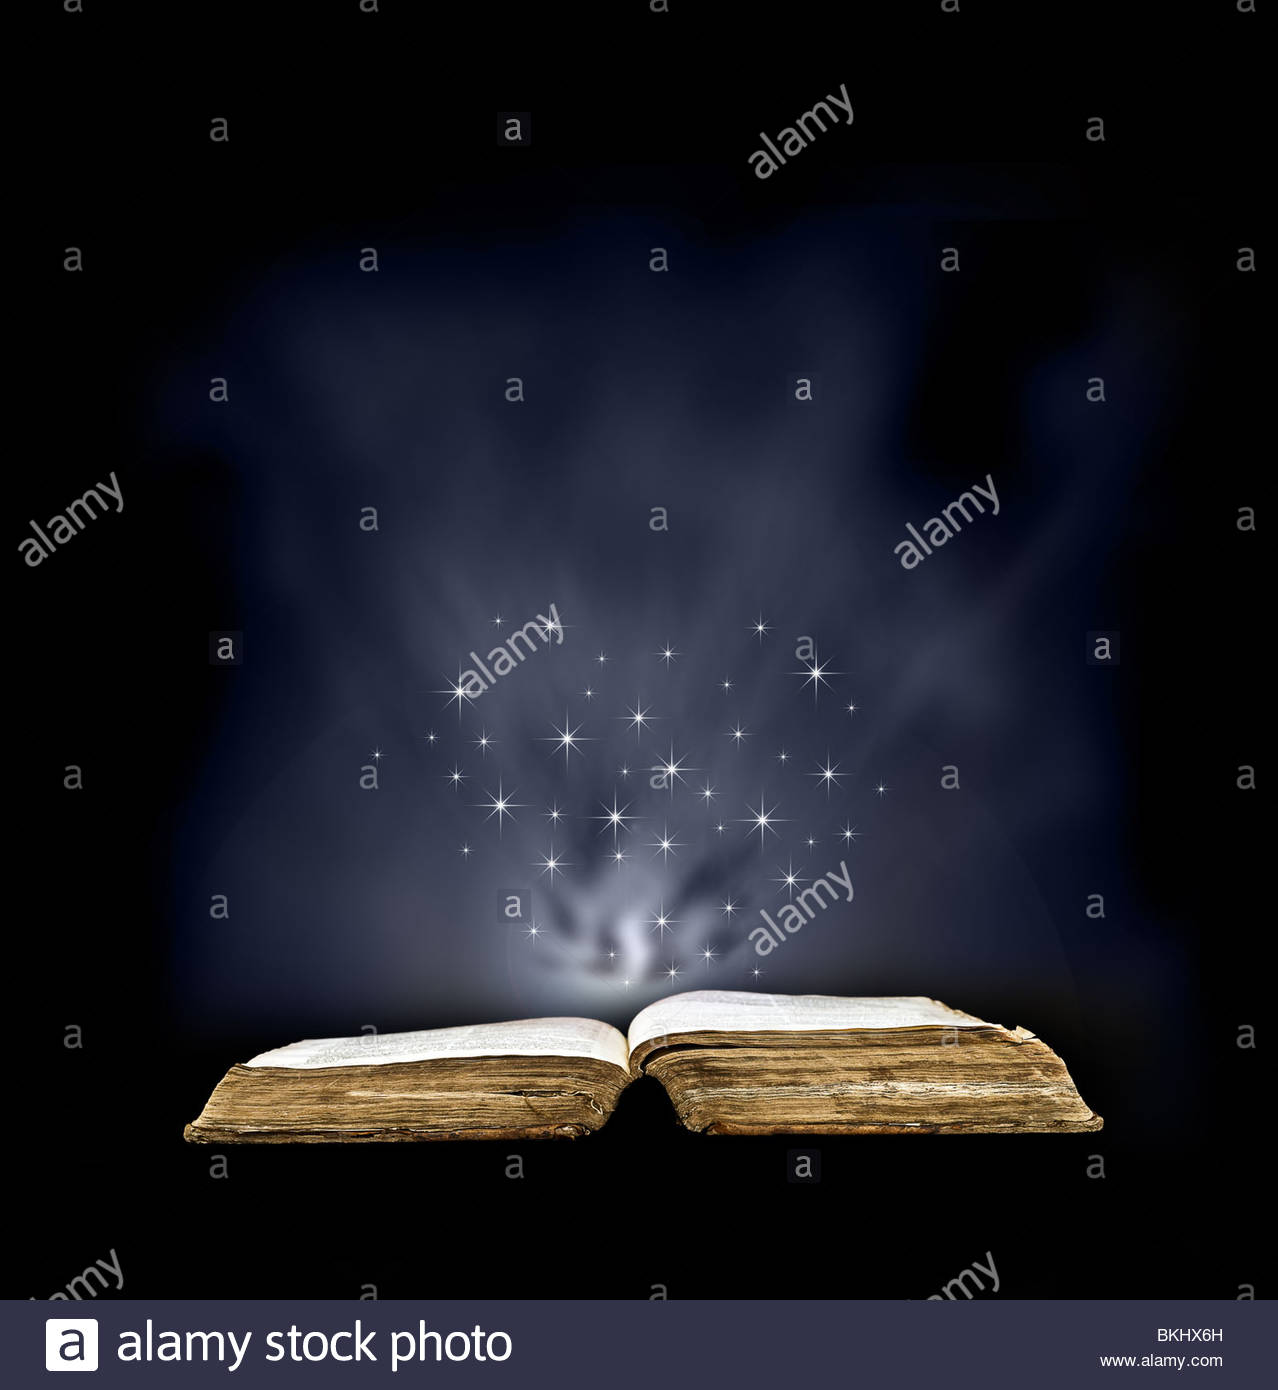 Livre de magie Photo Stock